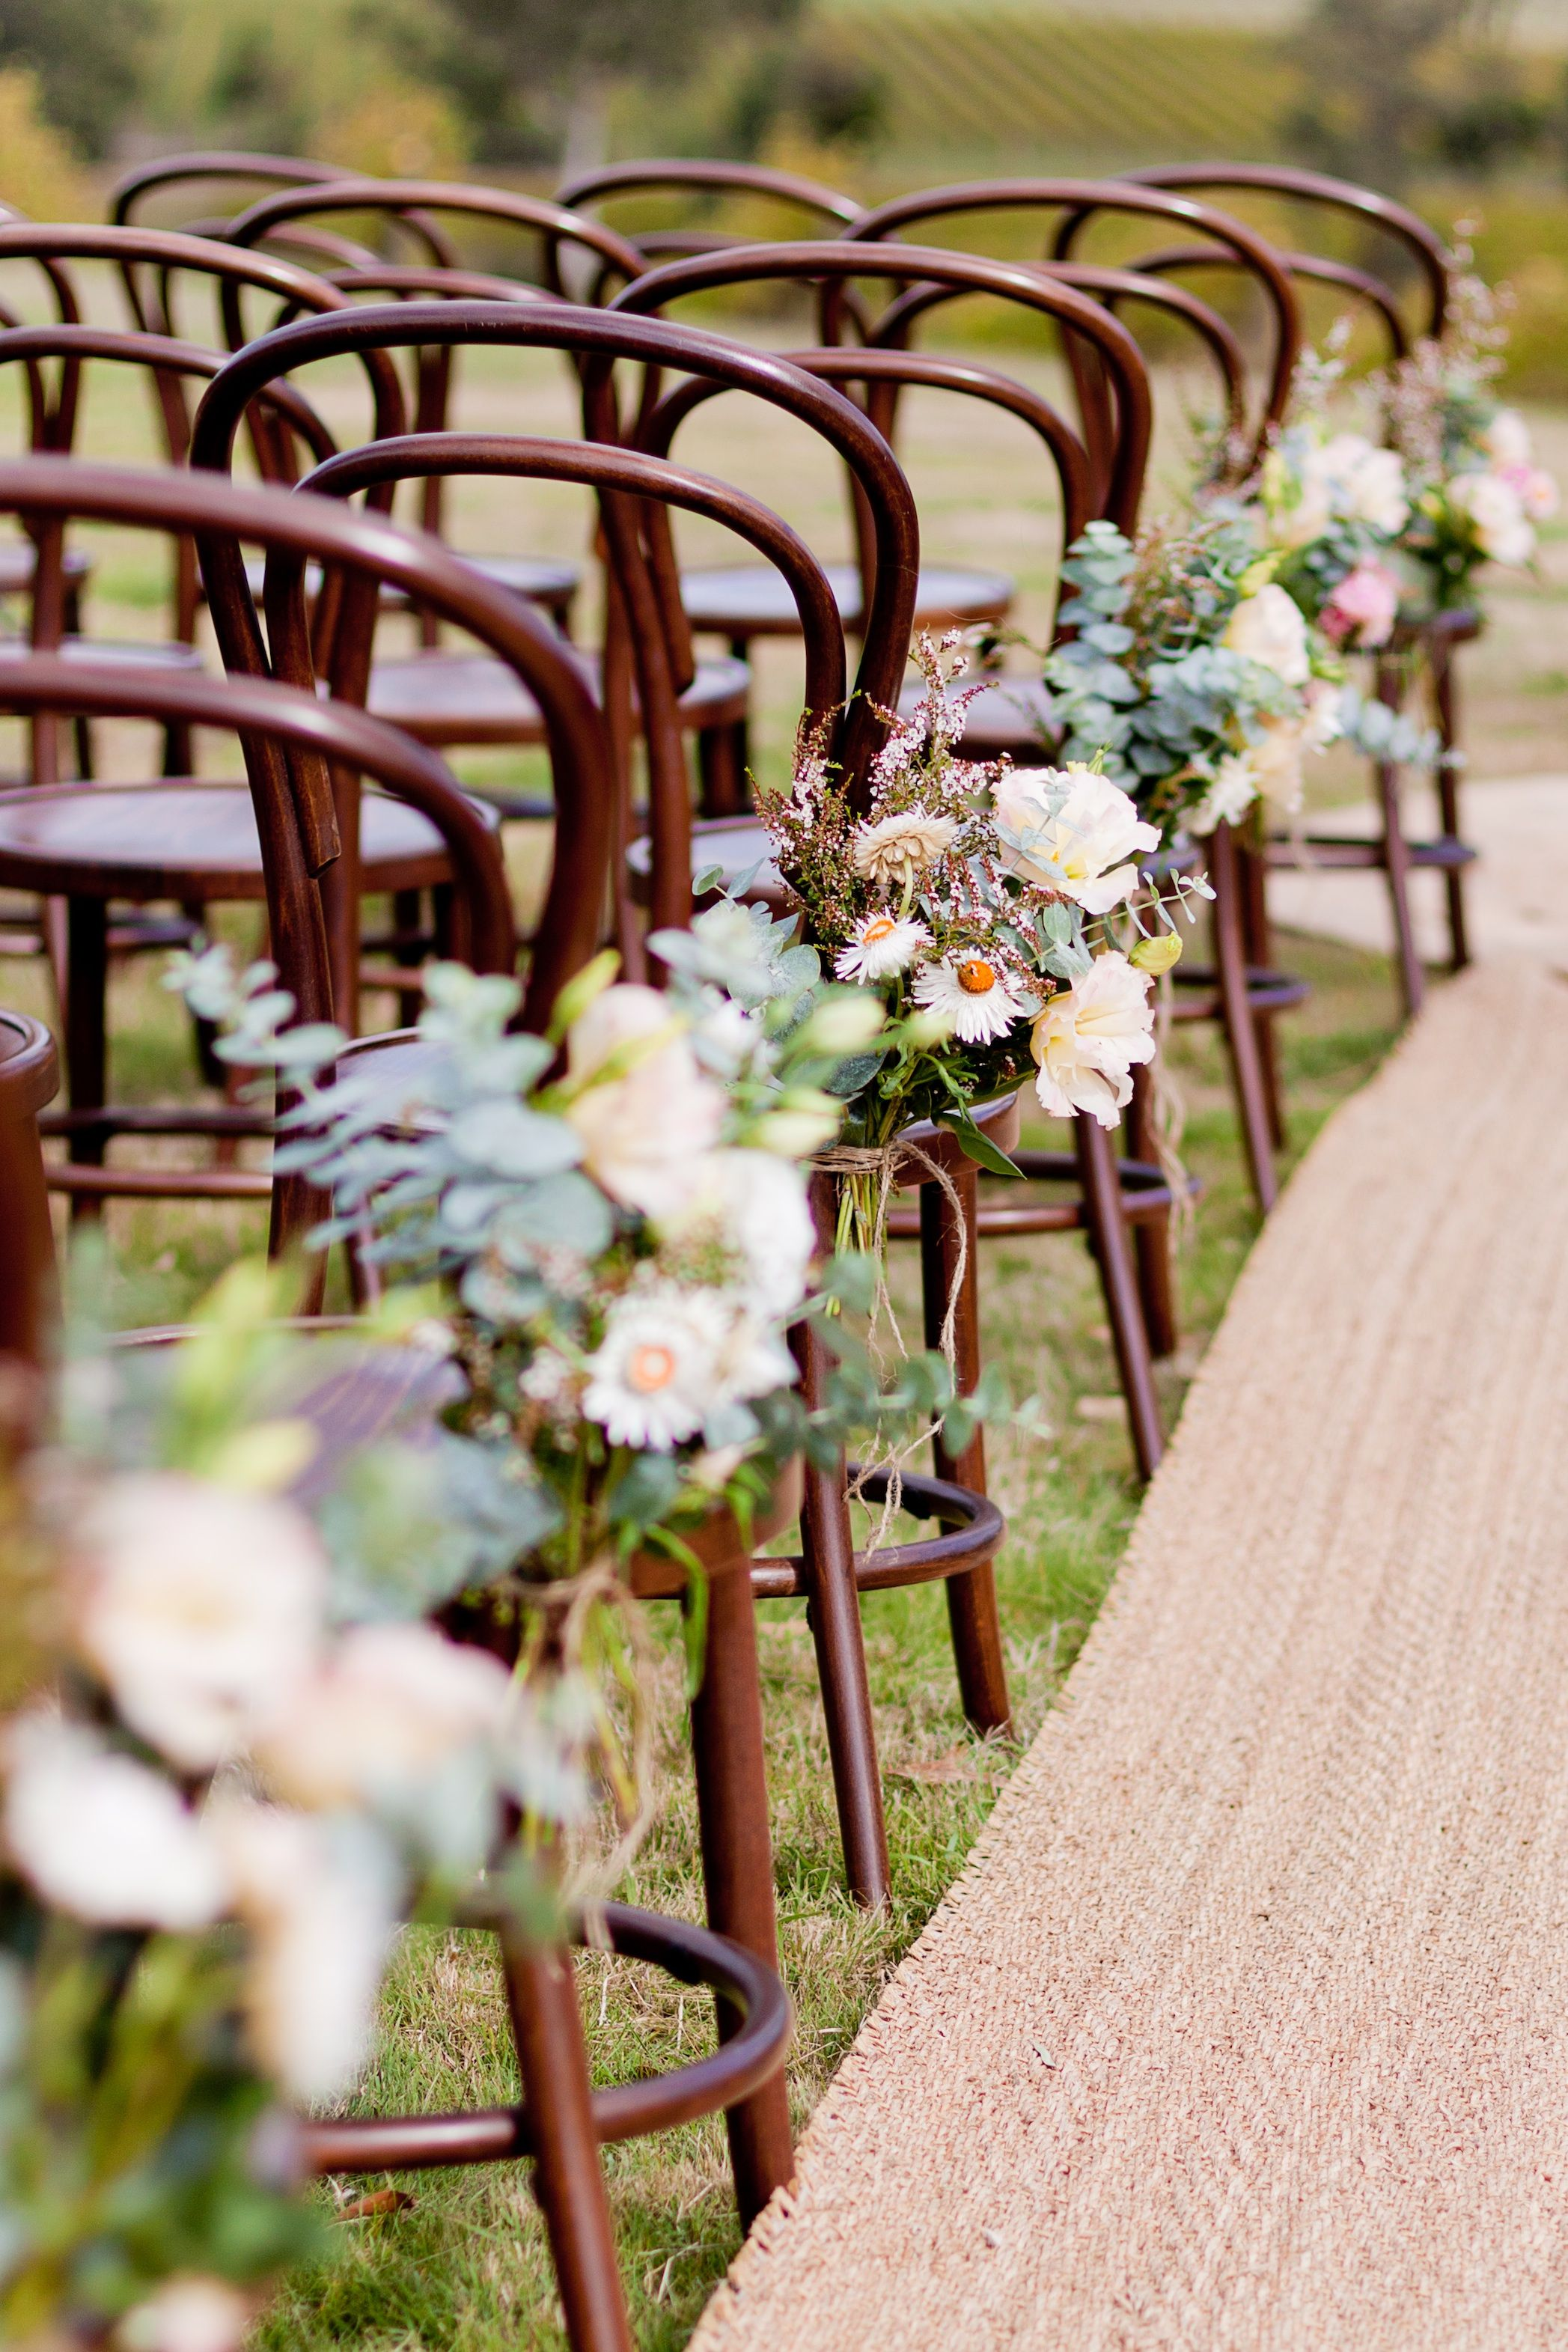 Wedding Chair Back Decorations Upholstered Chairs With Wooden Arms 40 Ways To Decorate Your Ceremony Aisle Floral